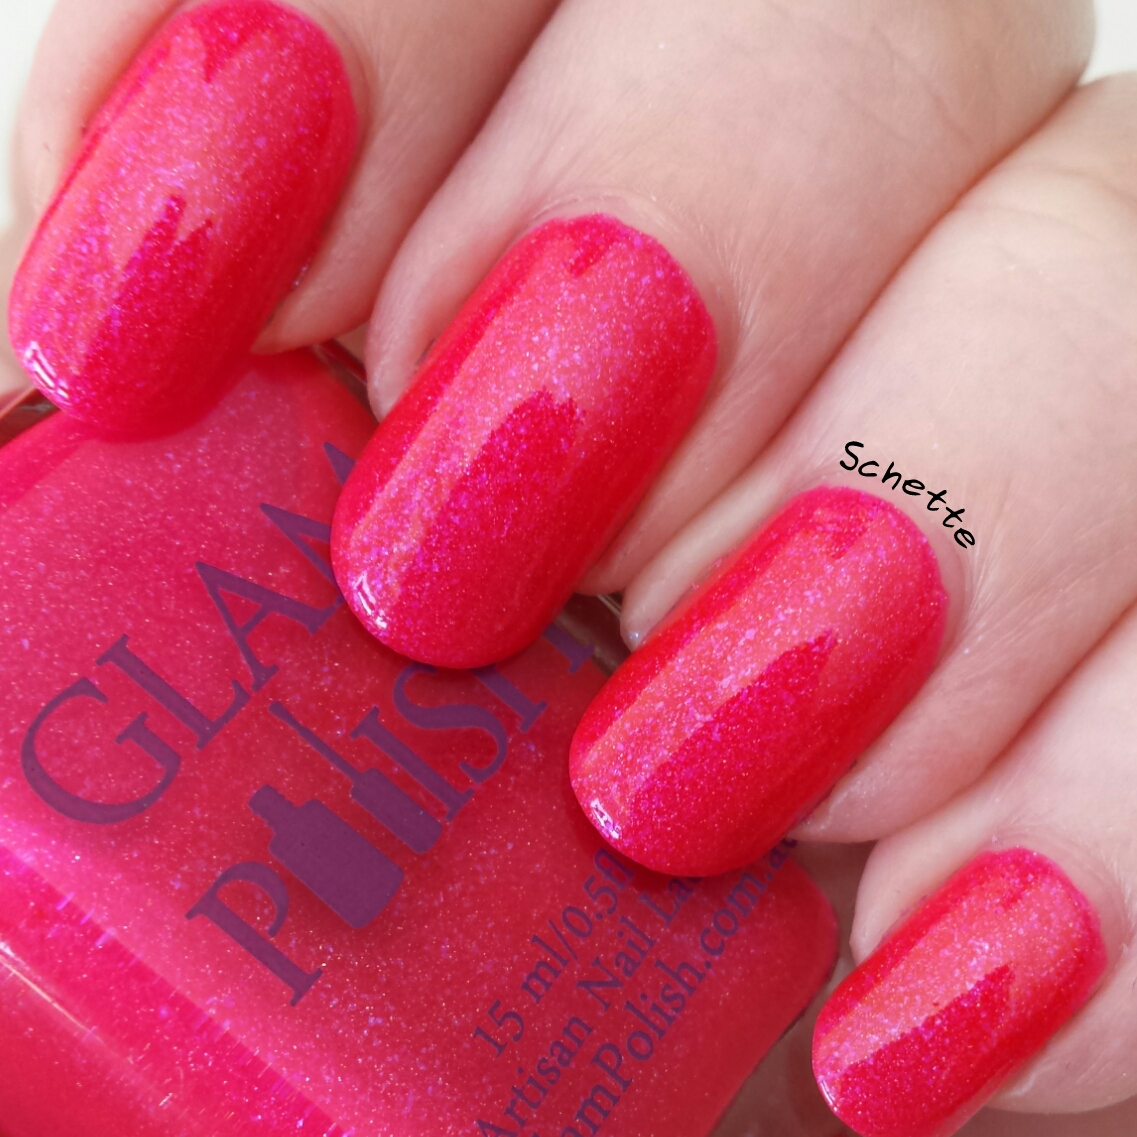 Les vernis Glam Polish We go together, Look at me, I'm Sandra Dee and Pink ladies